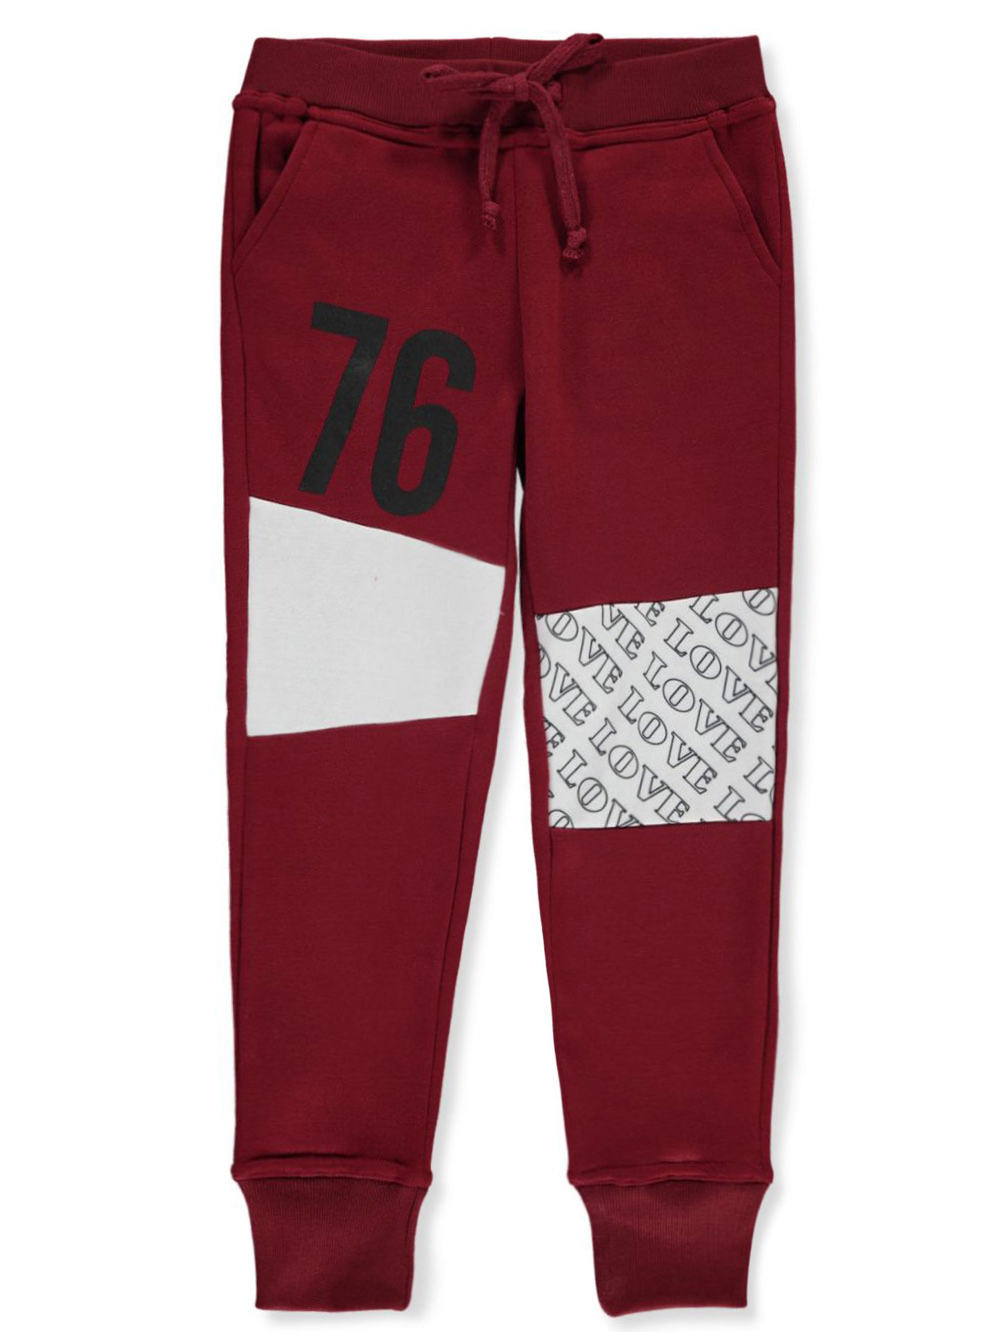 Joyce Concept Sweatpants and Joggers